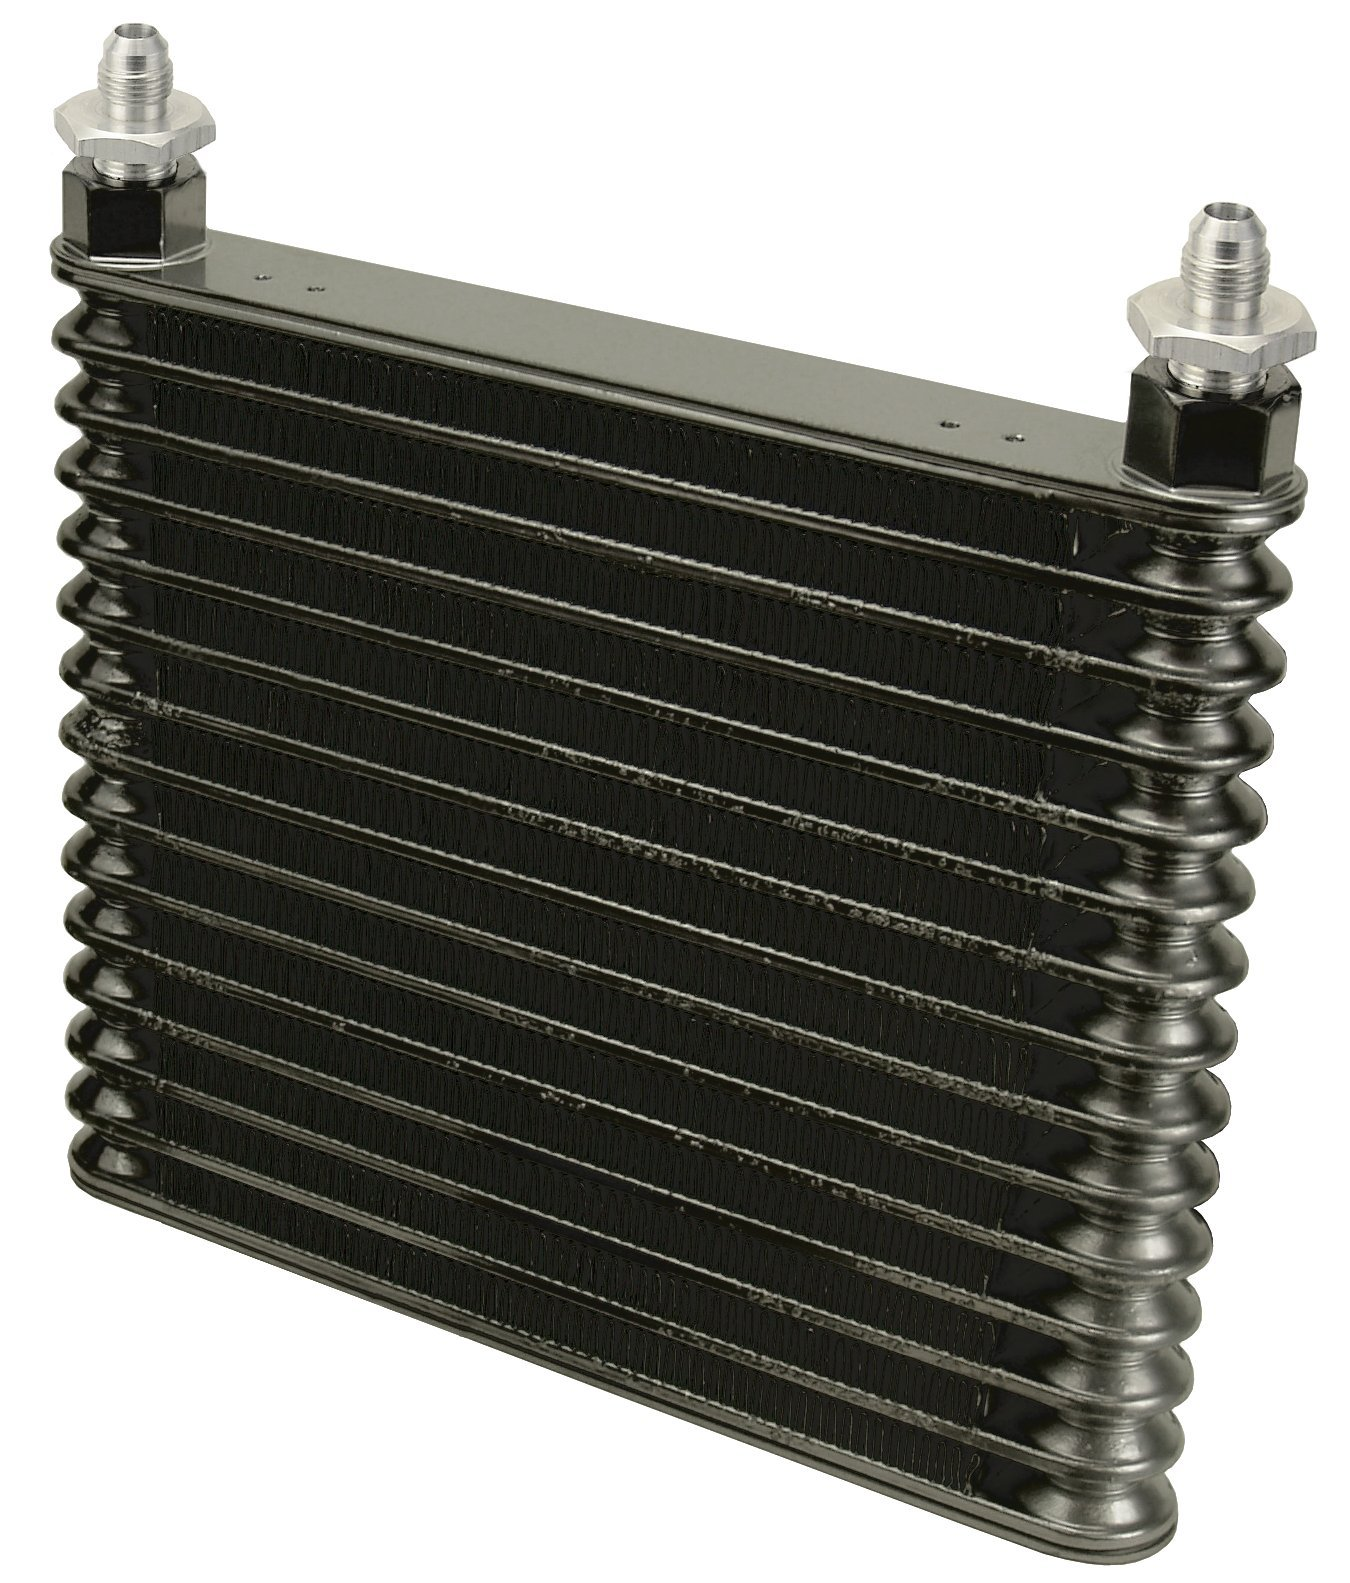 Derale 13751 Atomic-Cool Replacement Cooler by Derale